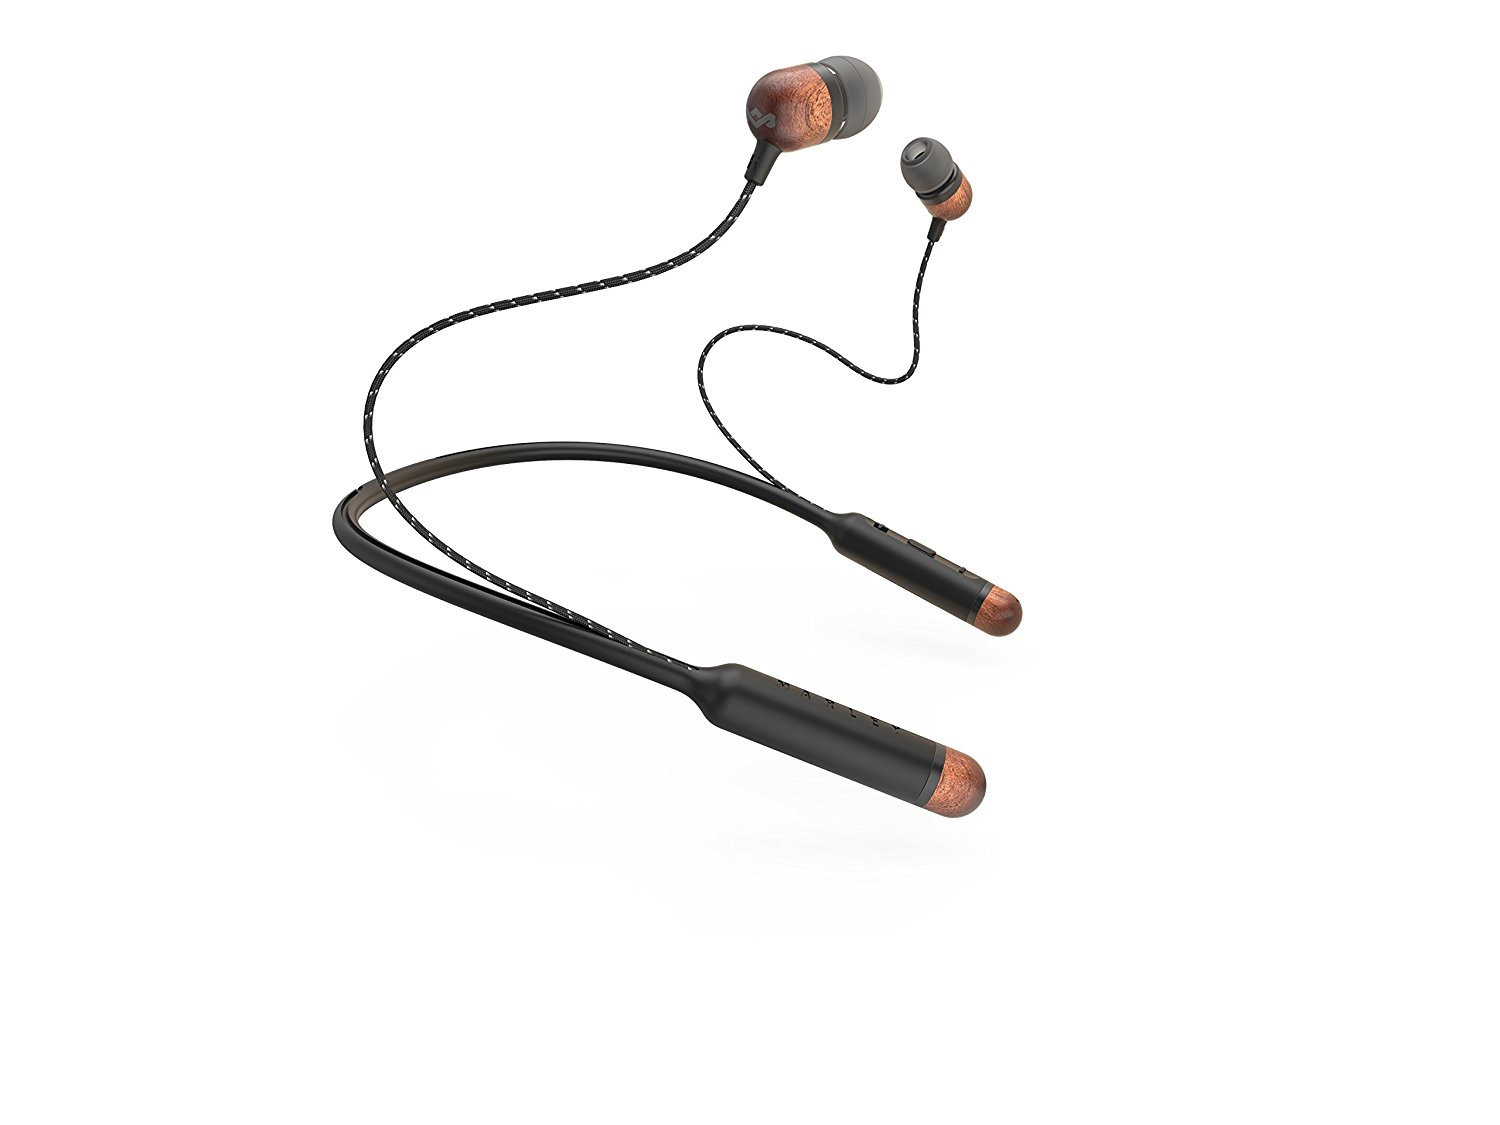 Best Wireless Earphone Under 5000 Rupees in India